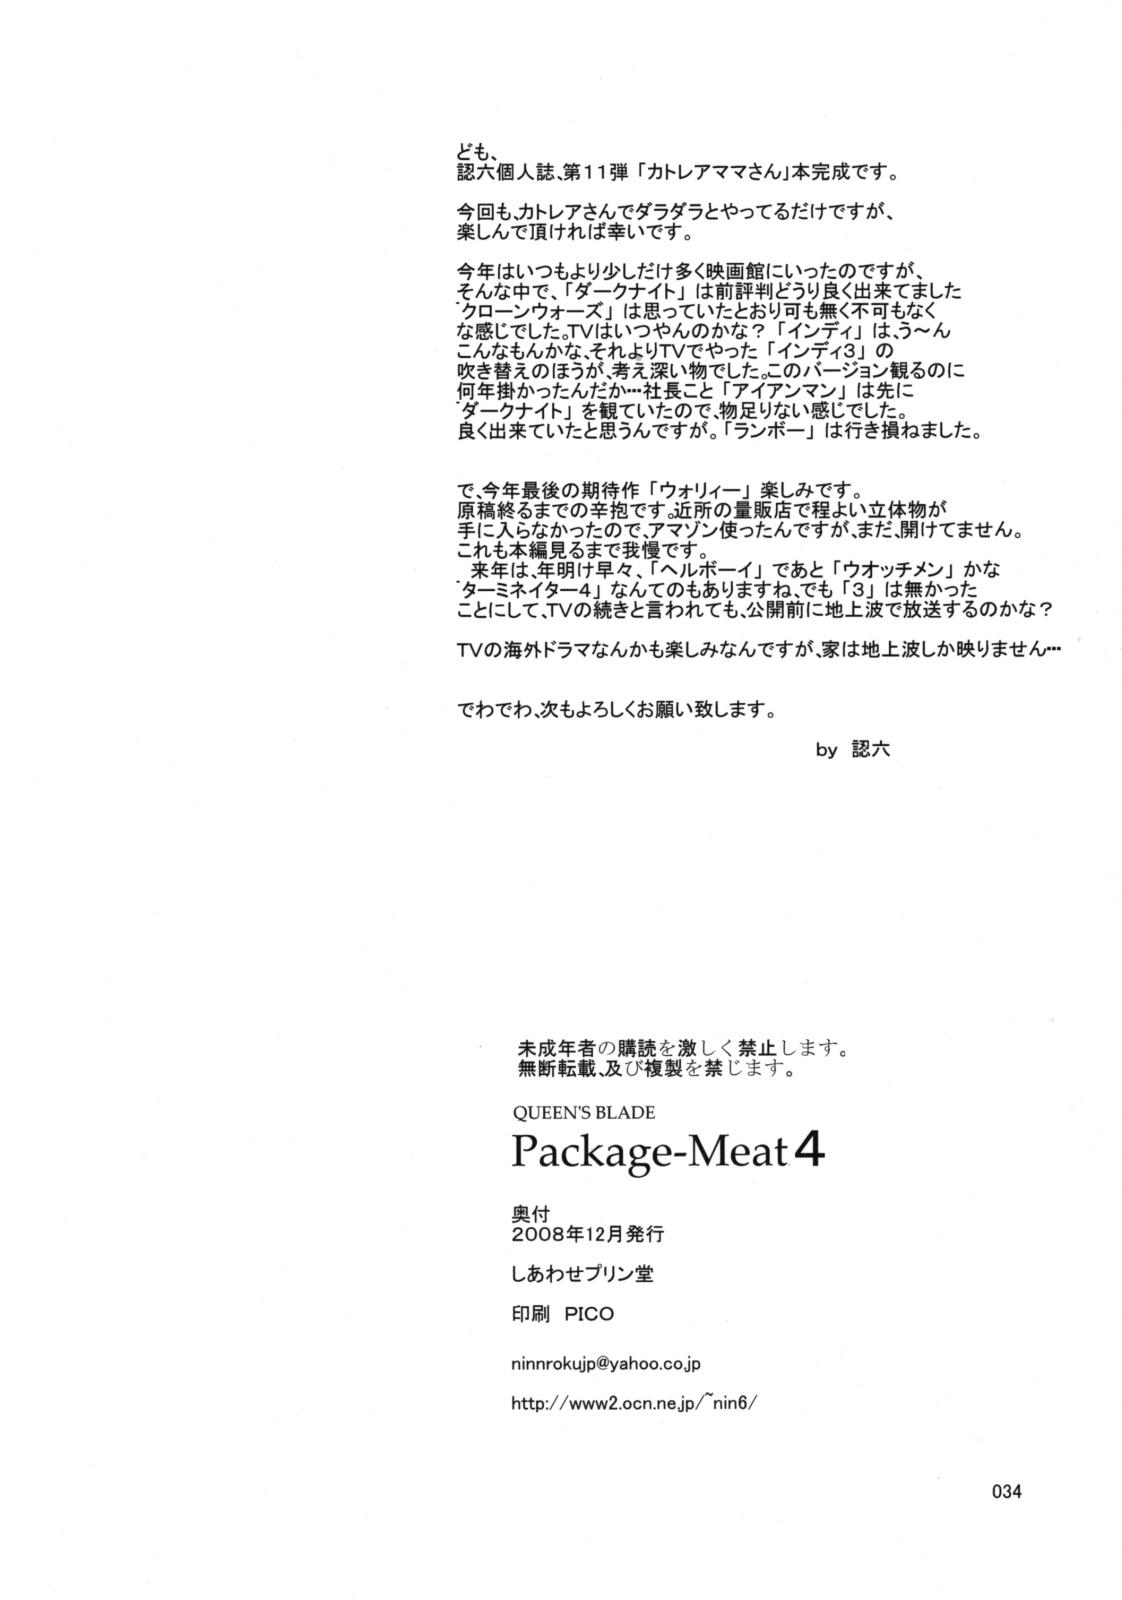 Package-Meat 4 32